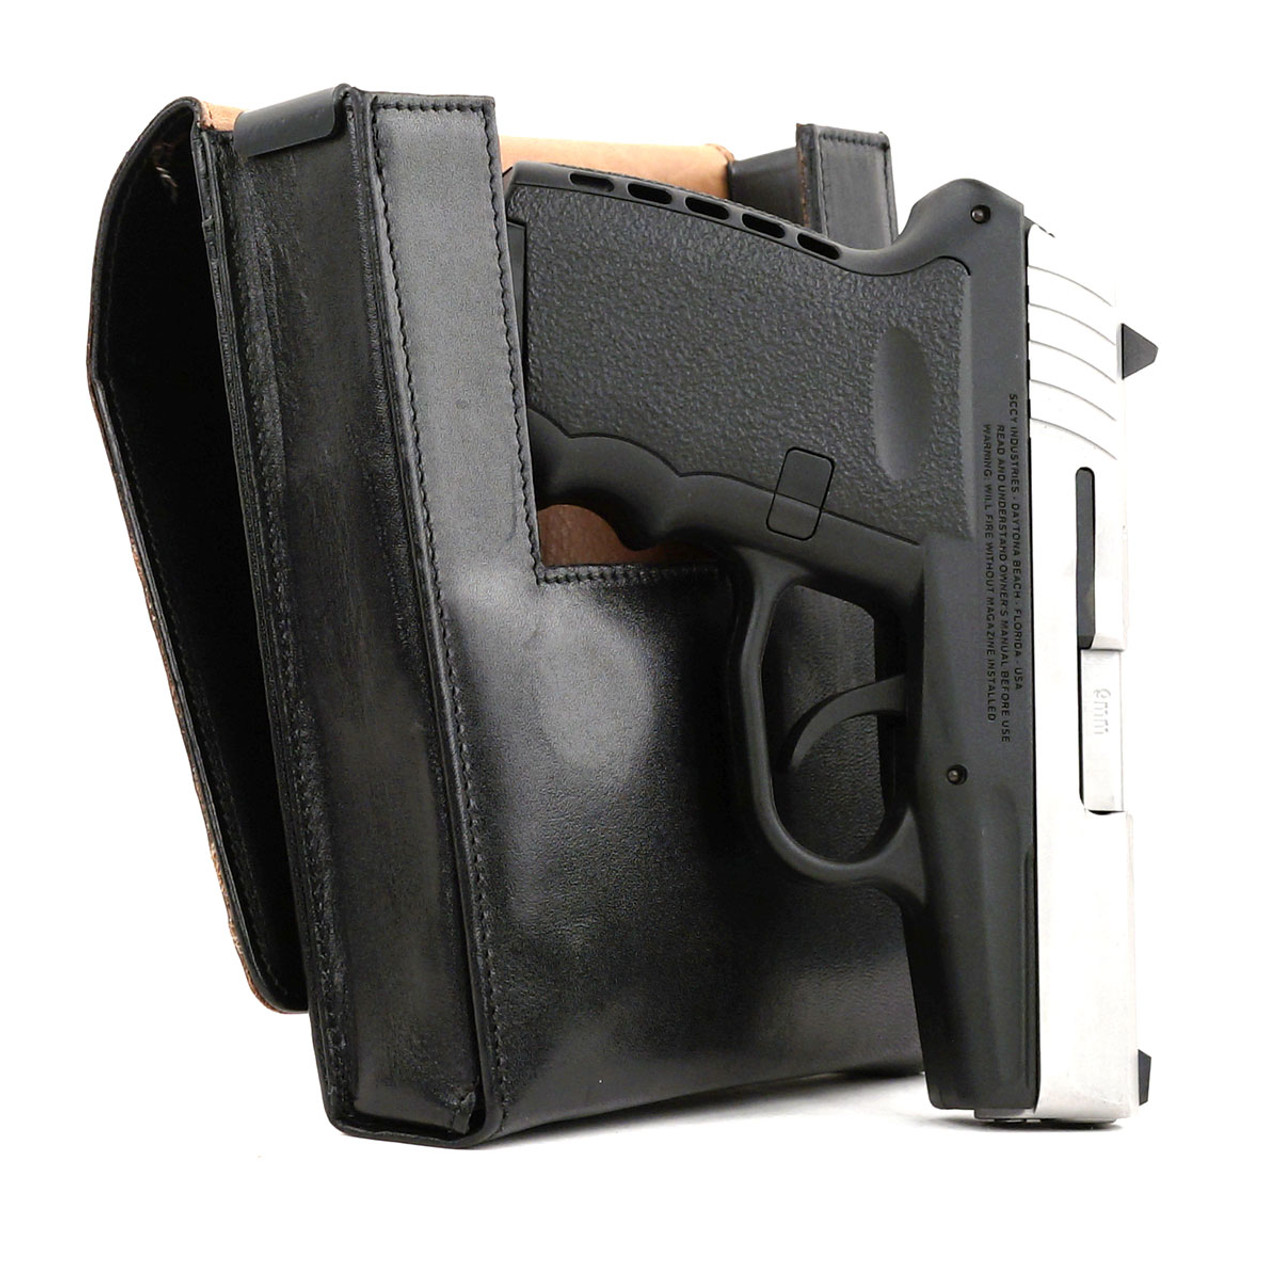 SCCY CPX-2 Holster